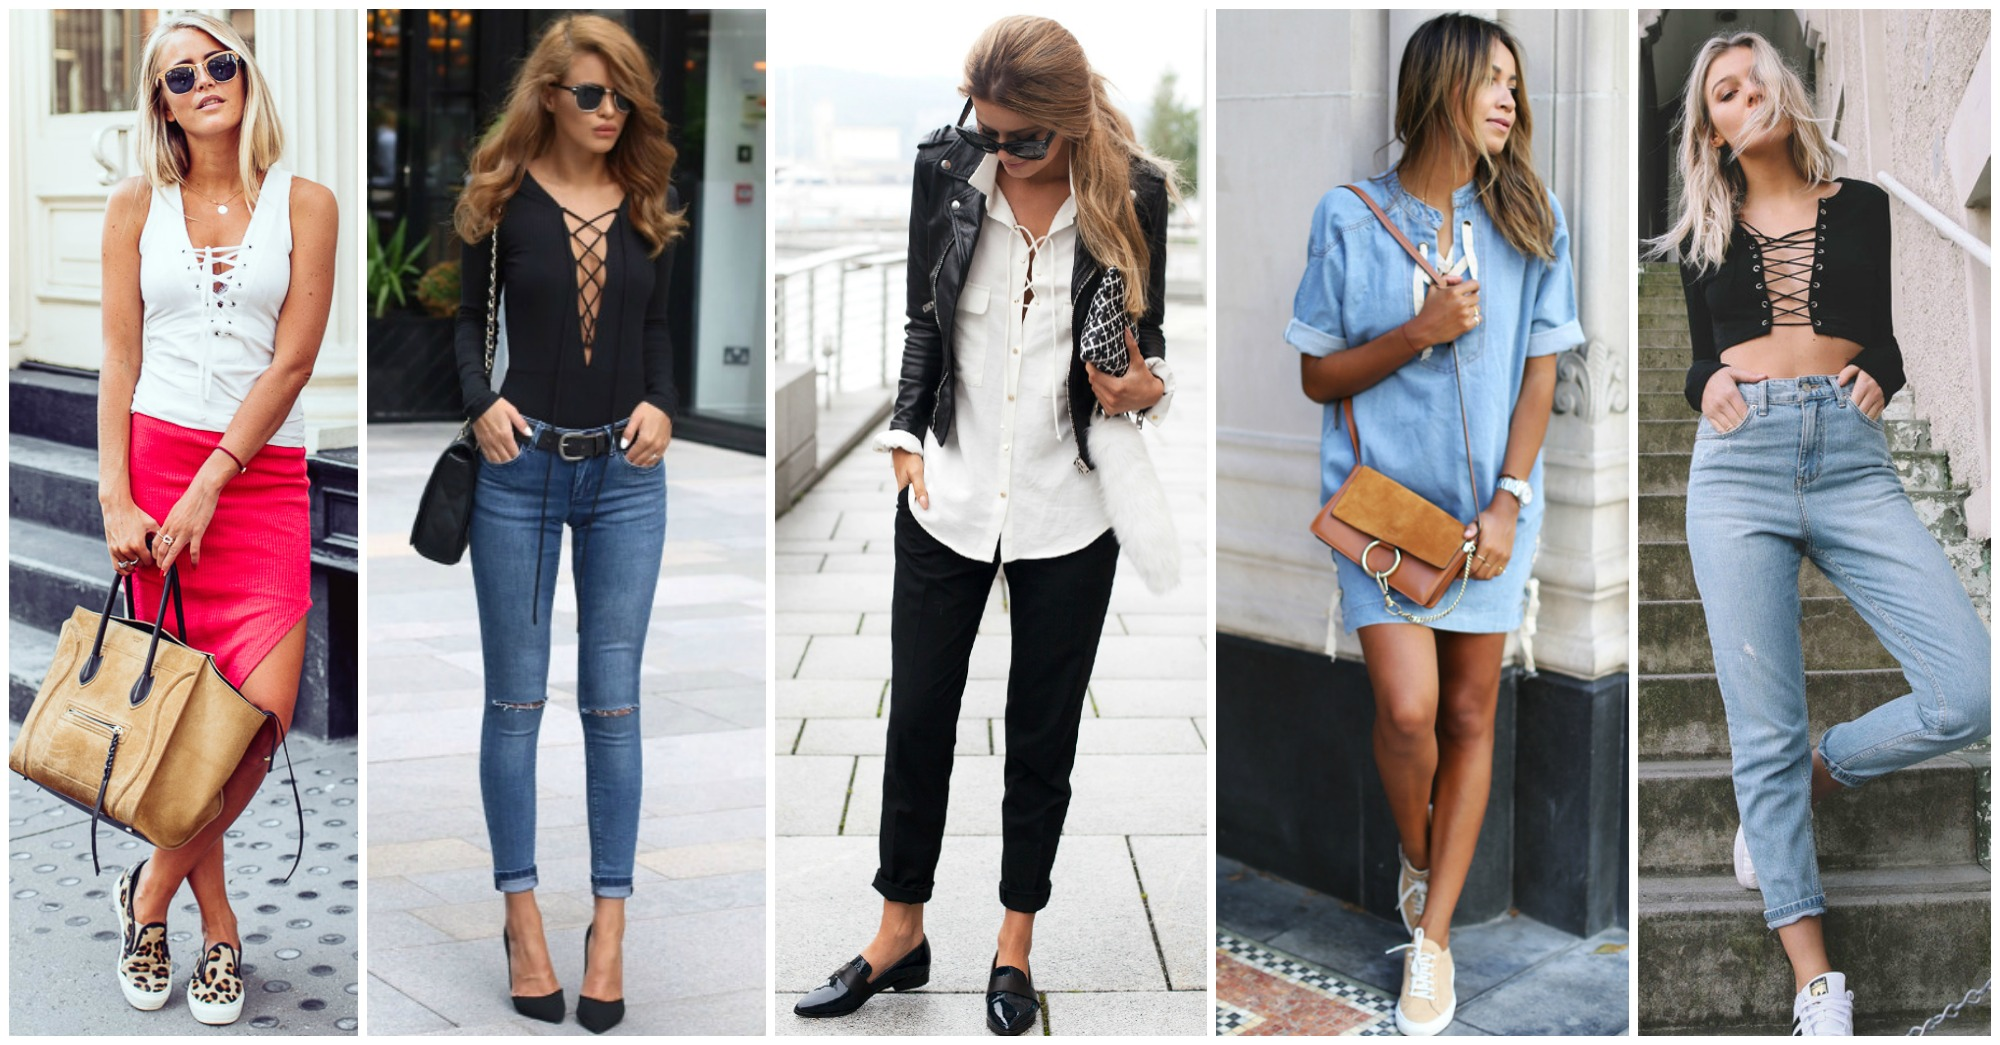 15 Fabulous Ways to Wear Lace Up Shirts and Dresses